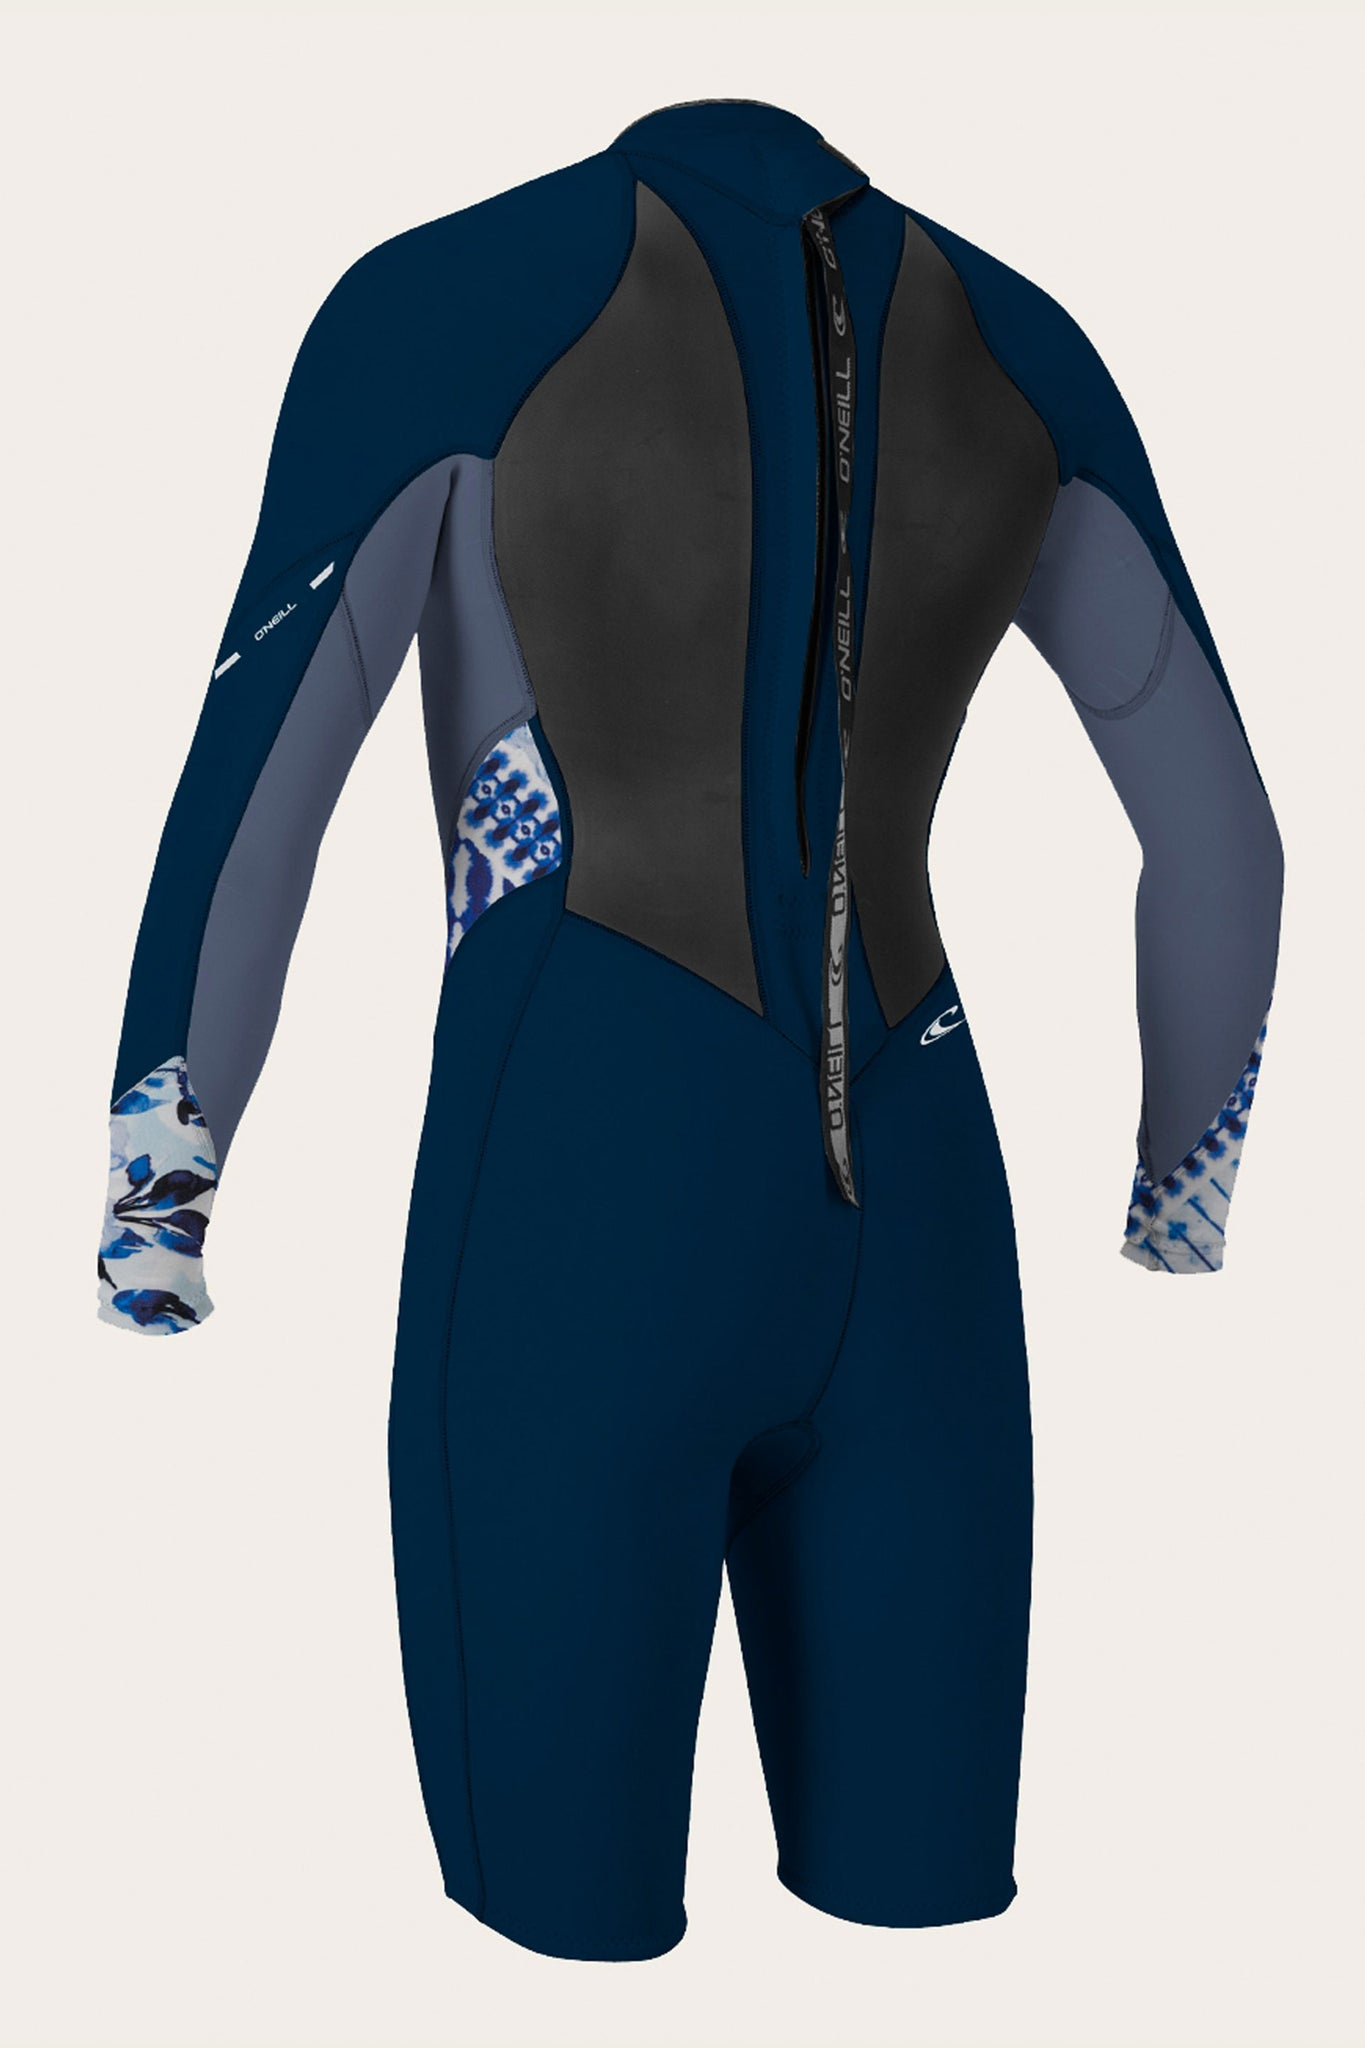 Women's Bahia 2/1Mm Back Zip L/S Spring Wetsuit - Nvy/Mist/Indpatch | O'Neill